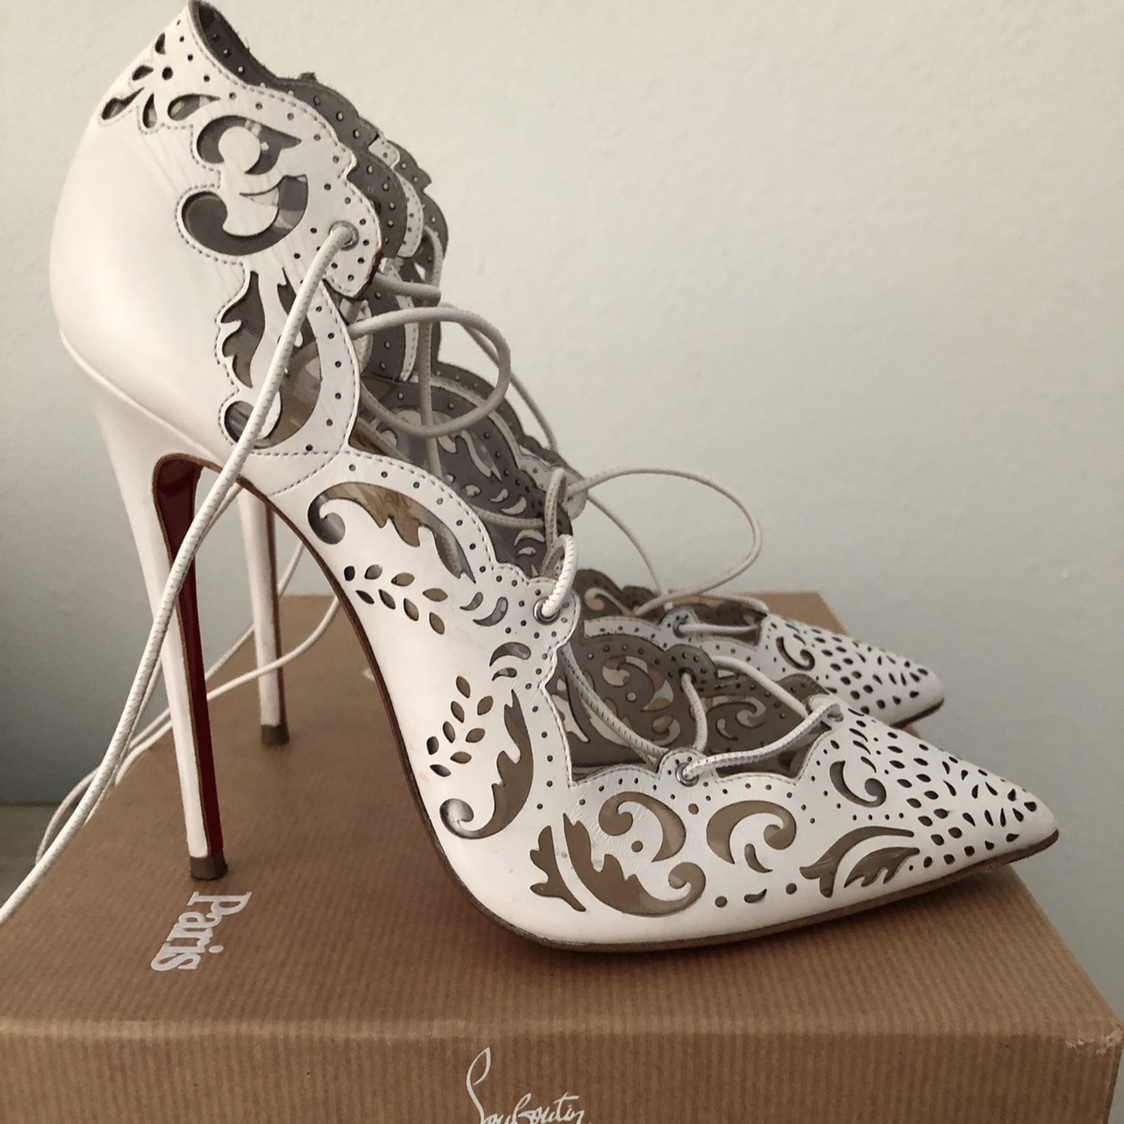 newest 73d67 bf5df Christian Louboutin Impera 120 white size 36. Comes... - Depop